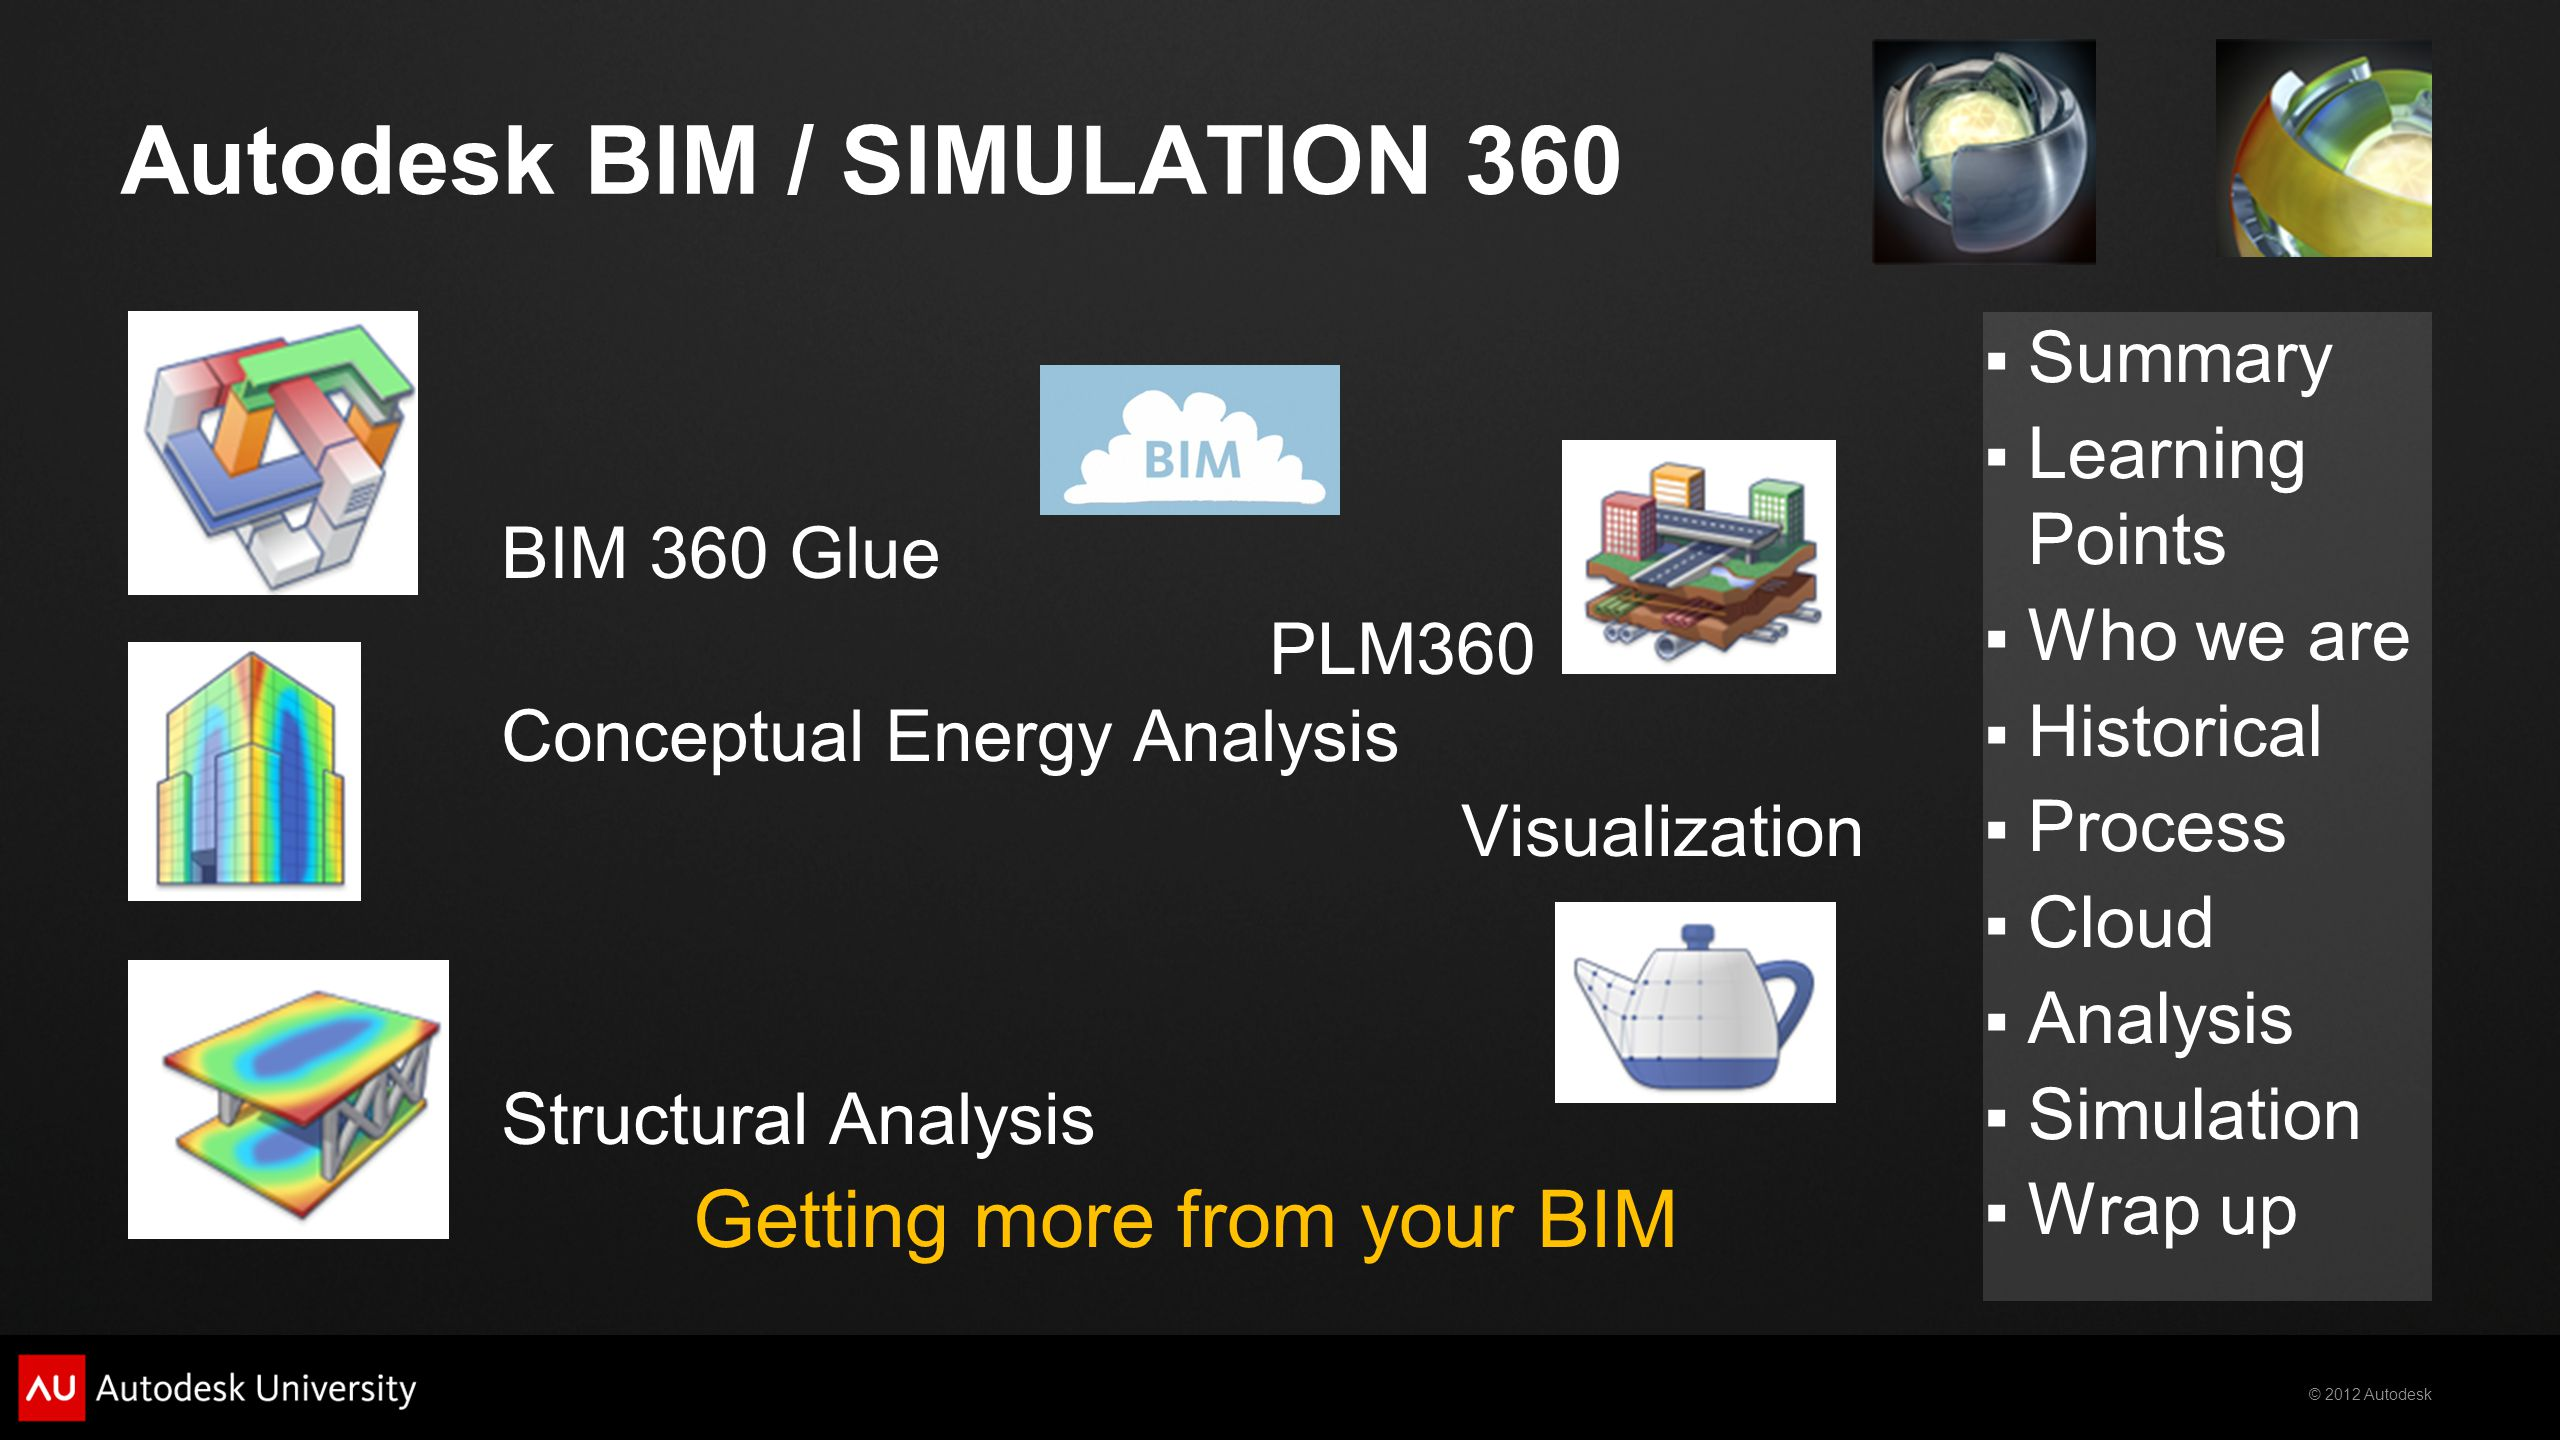 © 2012 Autodesk  Summary  Learning Points  Who we are  Historical  Process  Cloud  Analysis  Simulation  Wrap up Autodesk BIM / SIMULATION 360 BIM 360 Glue PLM360 Conceptual Energy Analysis Visualization Structural Analysis Getting more from your BIM